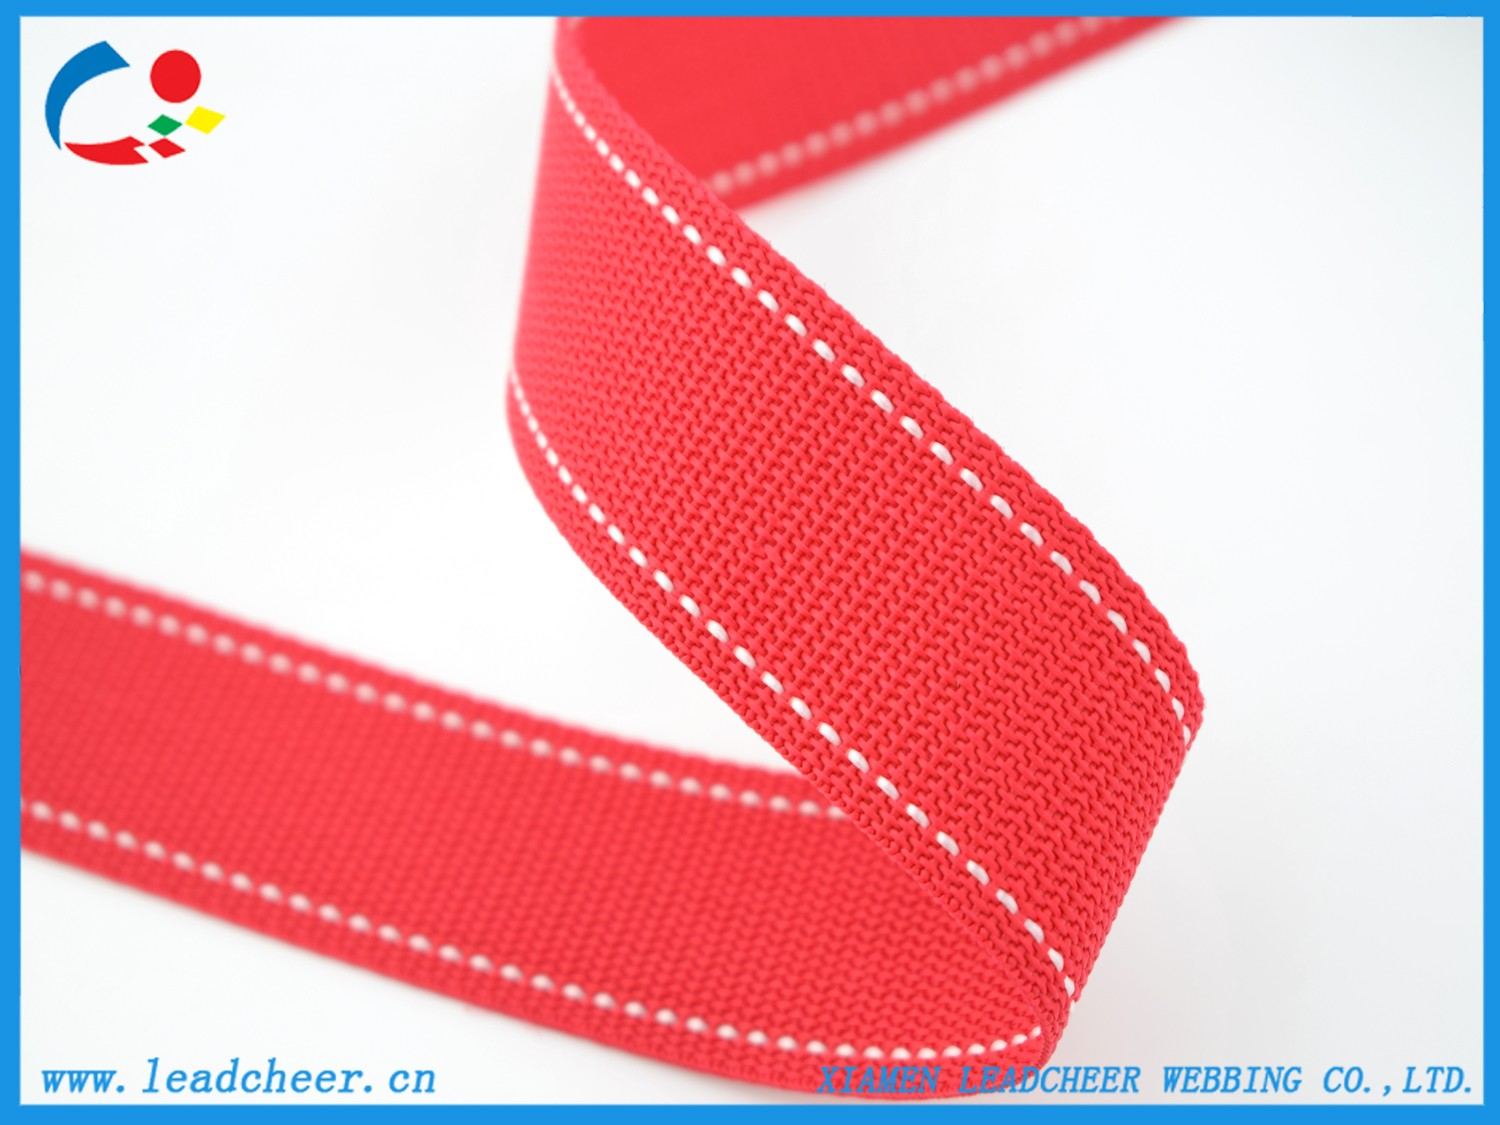 High quality Mattress PP Webbing Quotes,China Mattress PP Webbing Factory,Mattress PP Webbing Purchasing